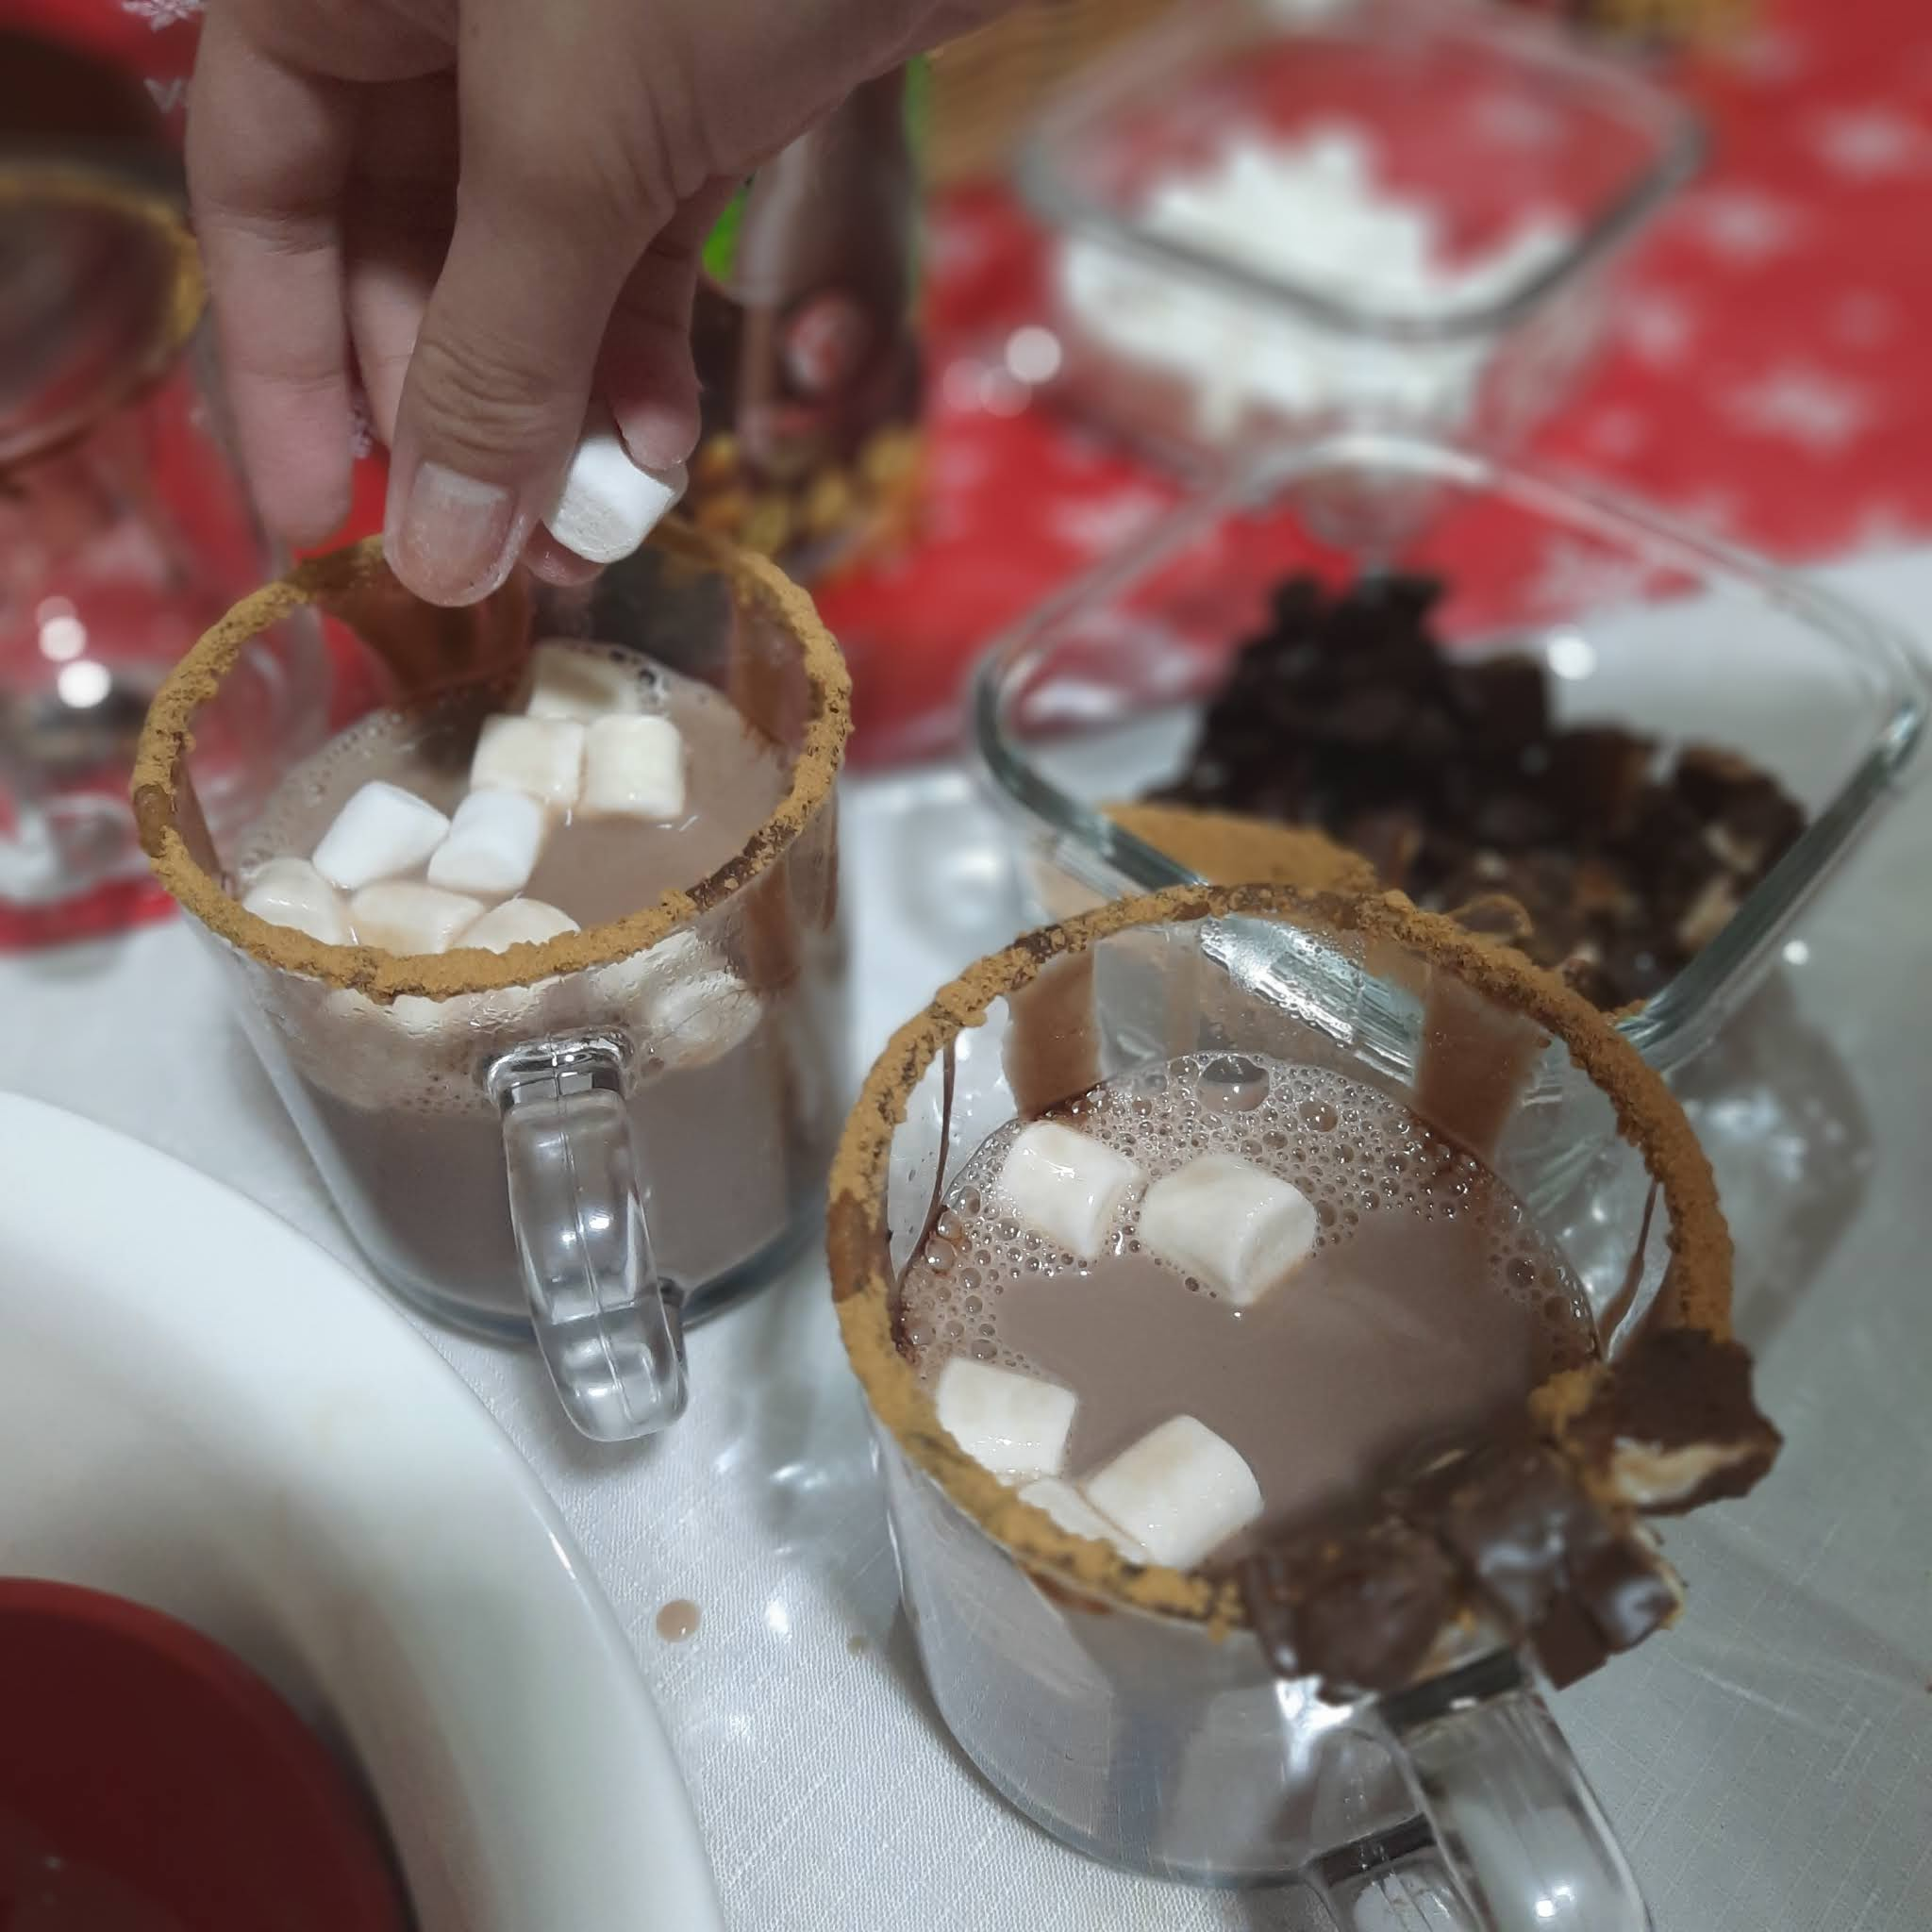 How to Make a Yummy Hot Chocolate Drink for Christmas that #FillsGood in an Instant